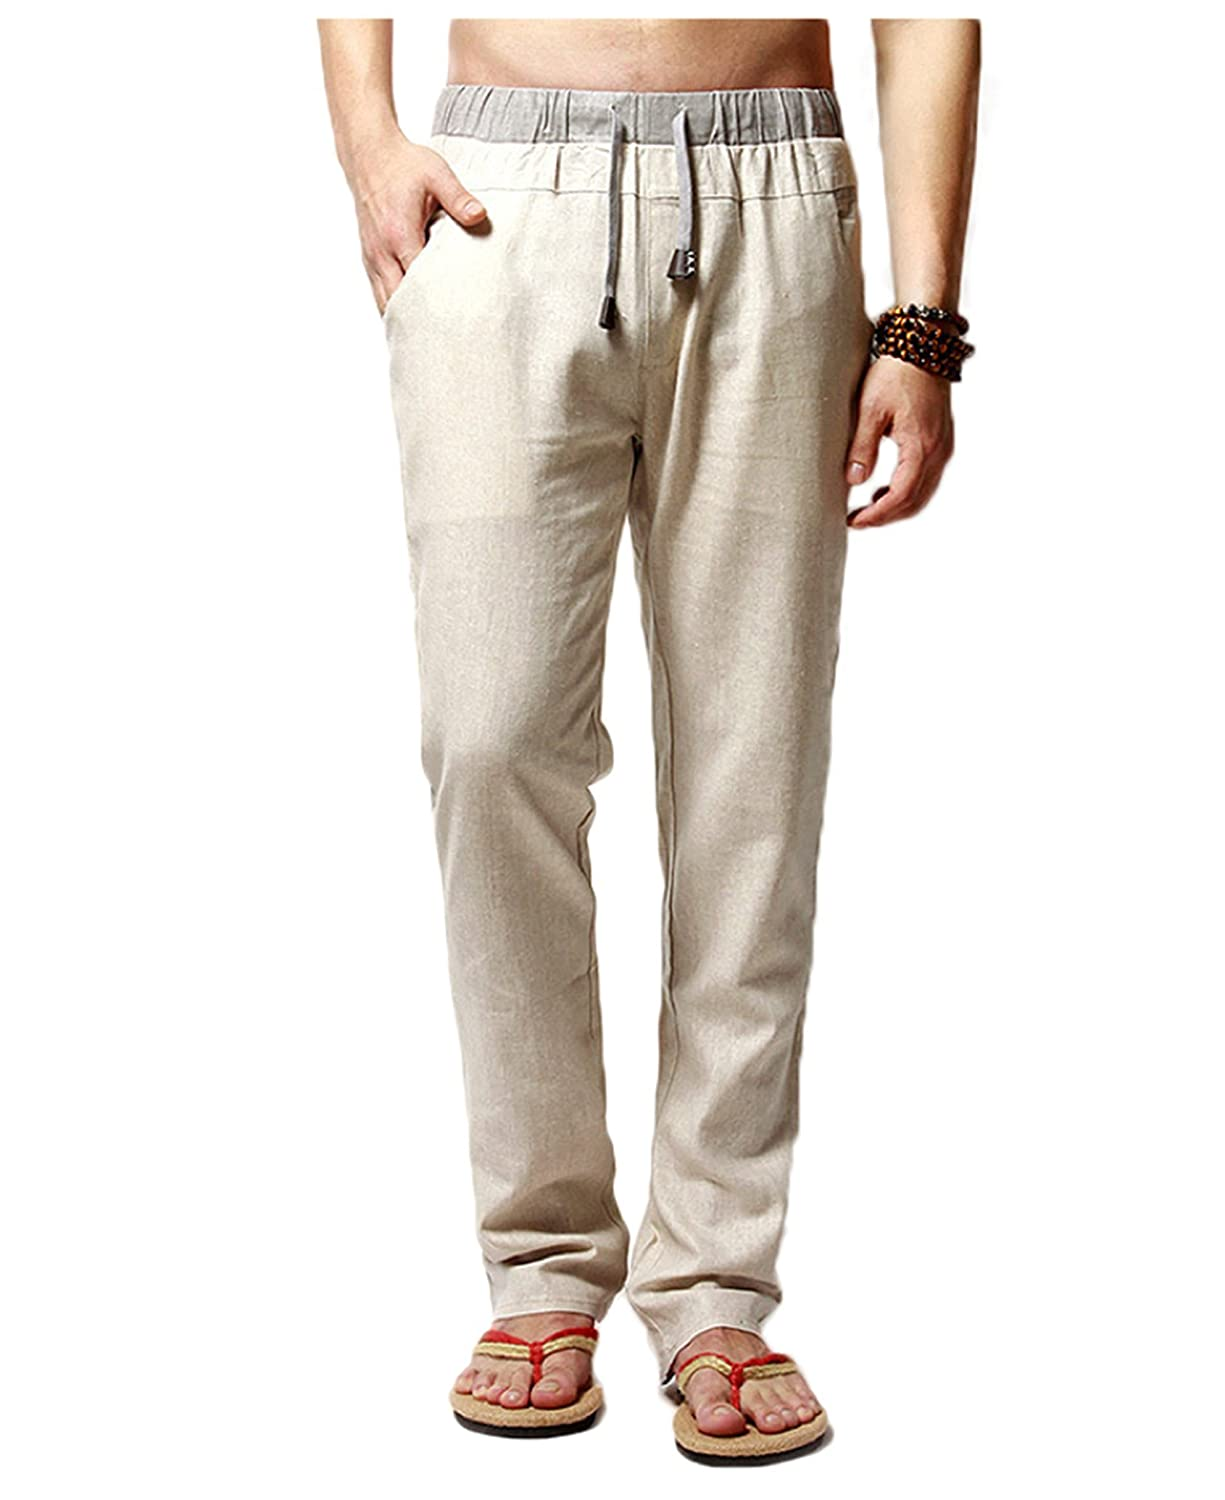 Men's Linen Comfortable Breathable Casual Pants Trousers Elastic Waist Drawstring